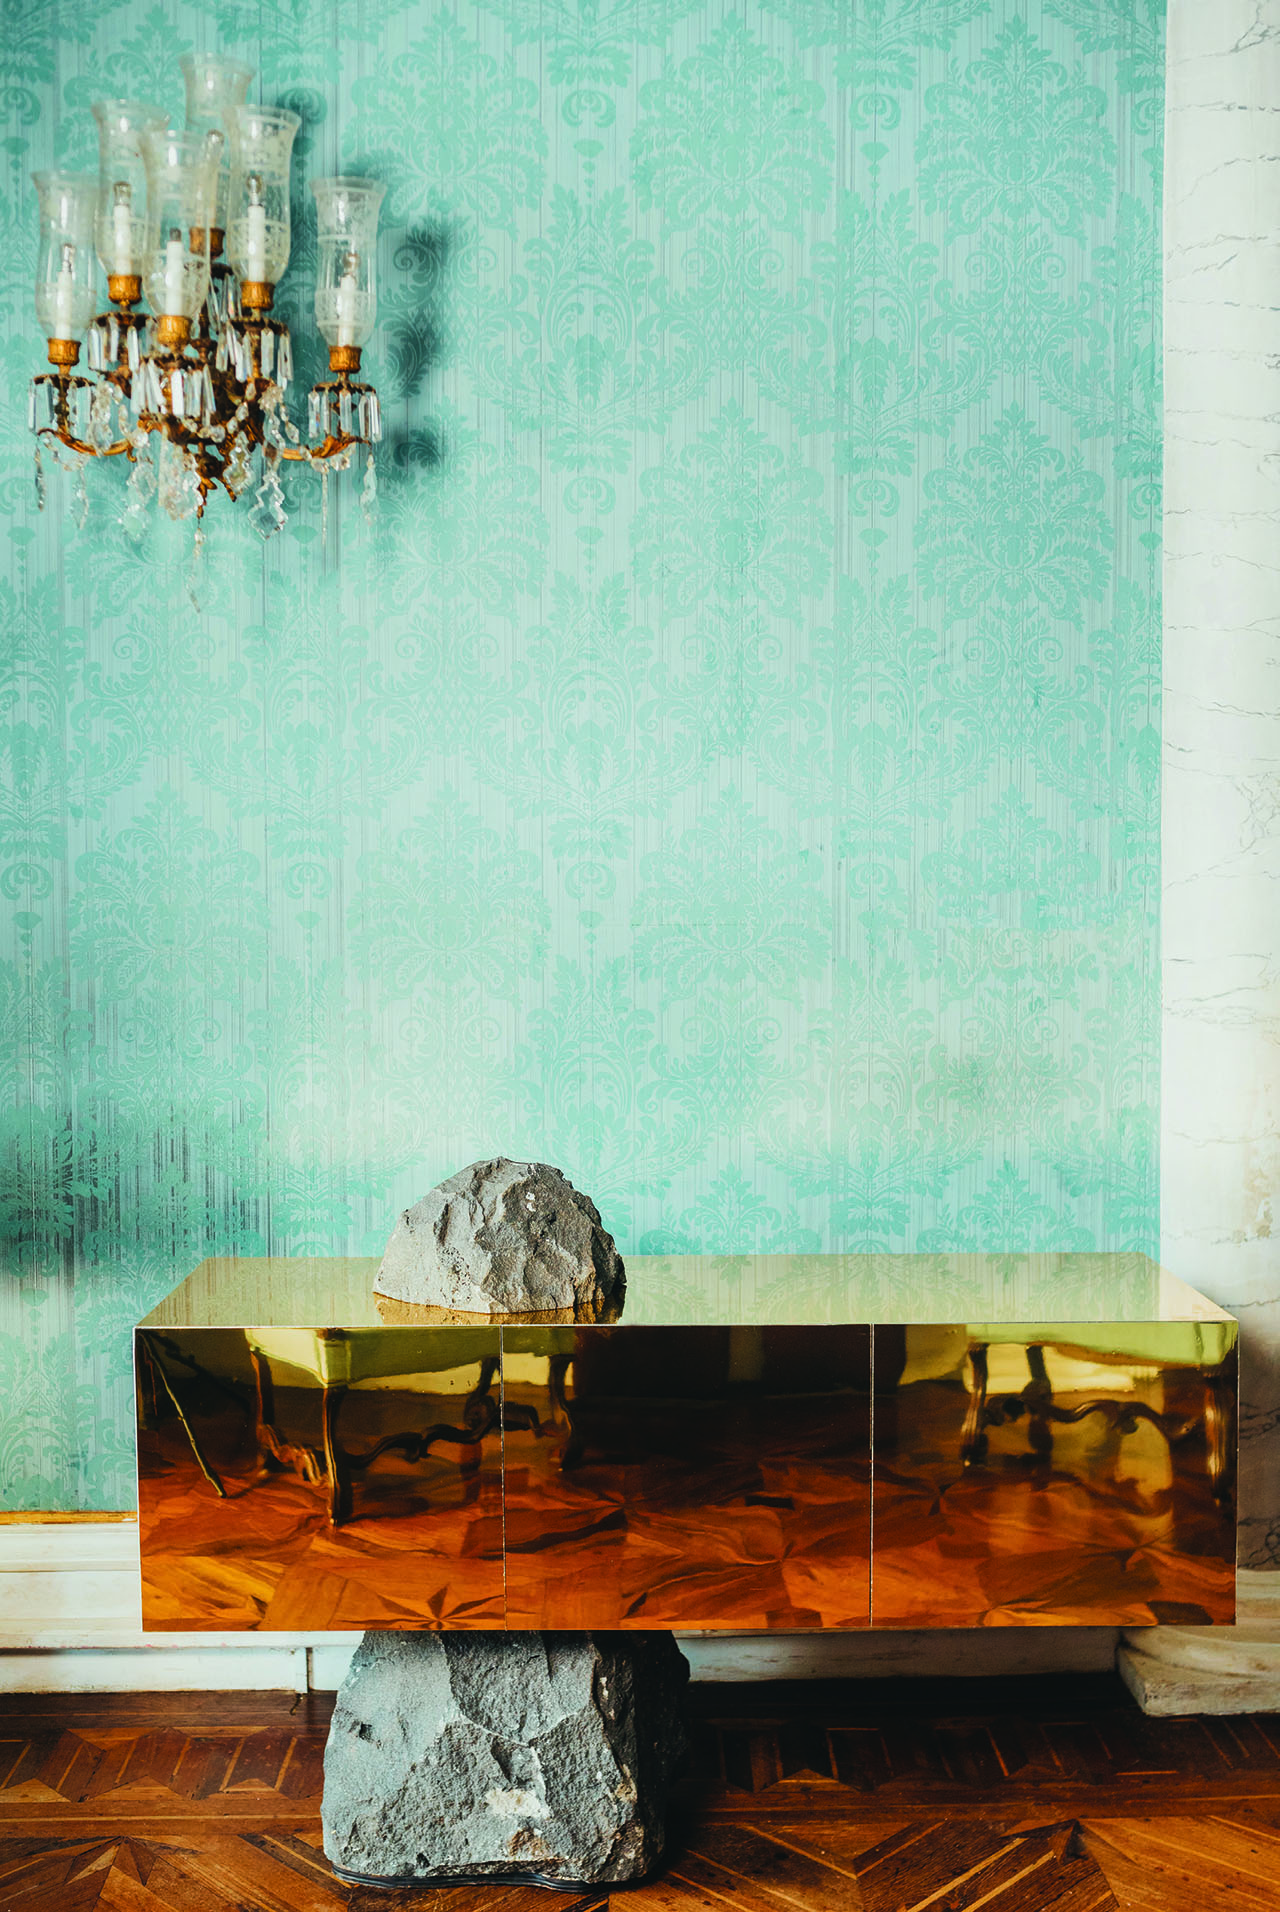 Odyssey sideboard by architect Francesco Maria Messina for Cypraea.